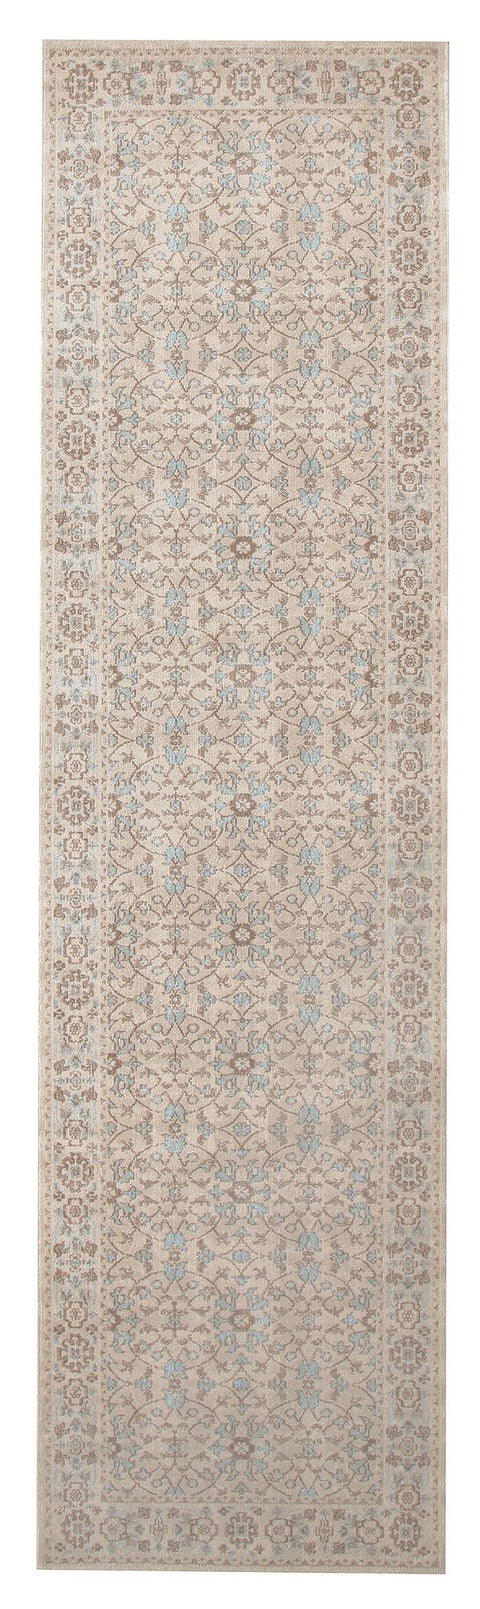 Anjara Bone & Blue Floral Stonewashed Runner Rug